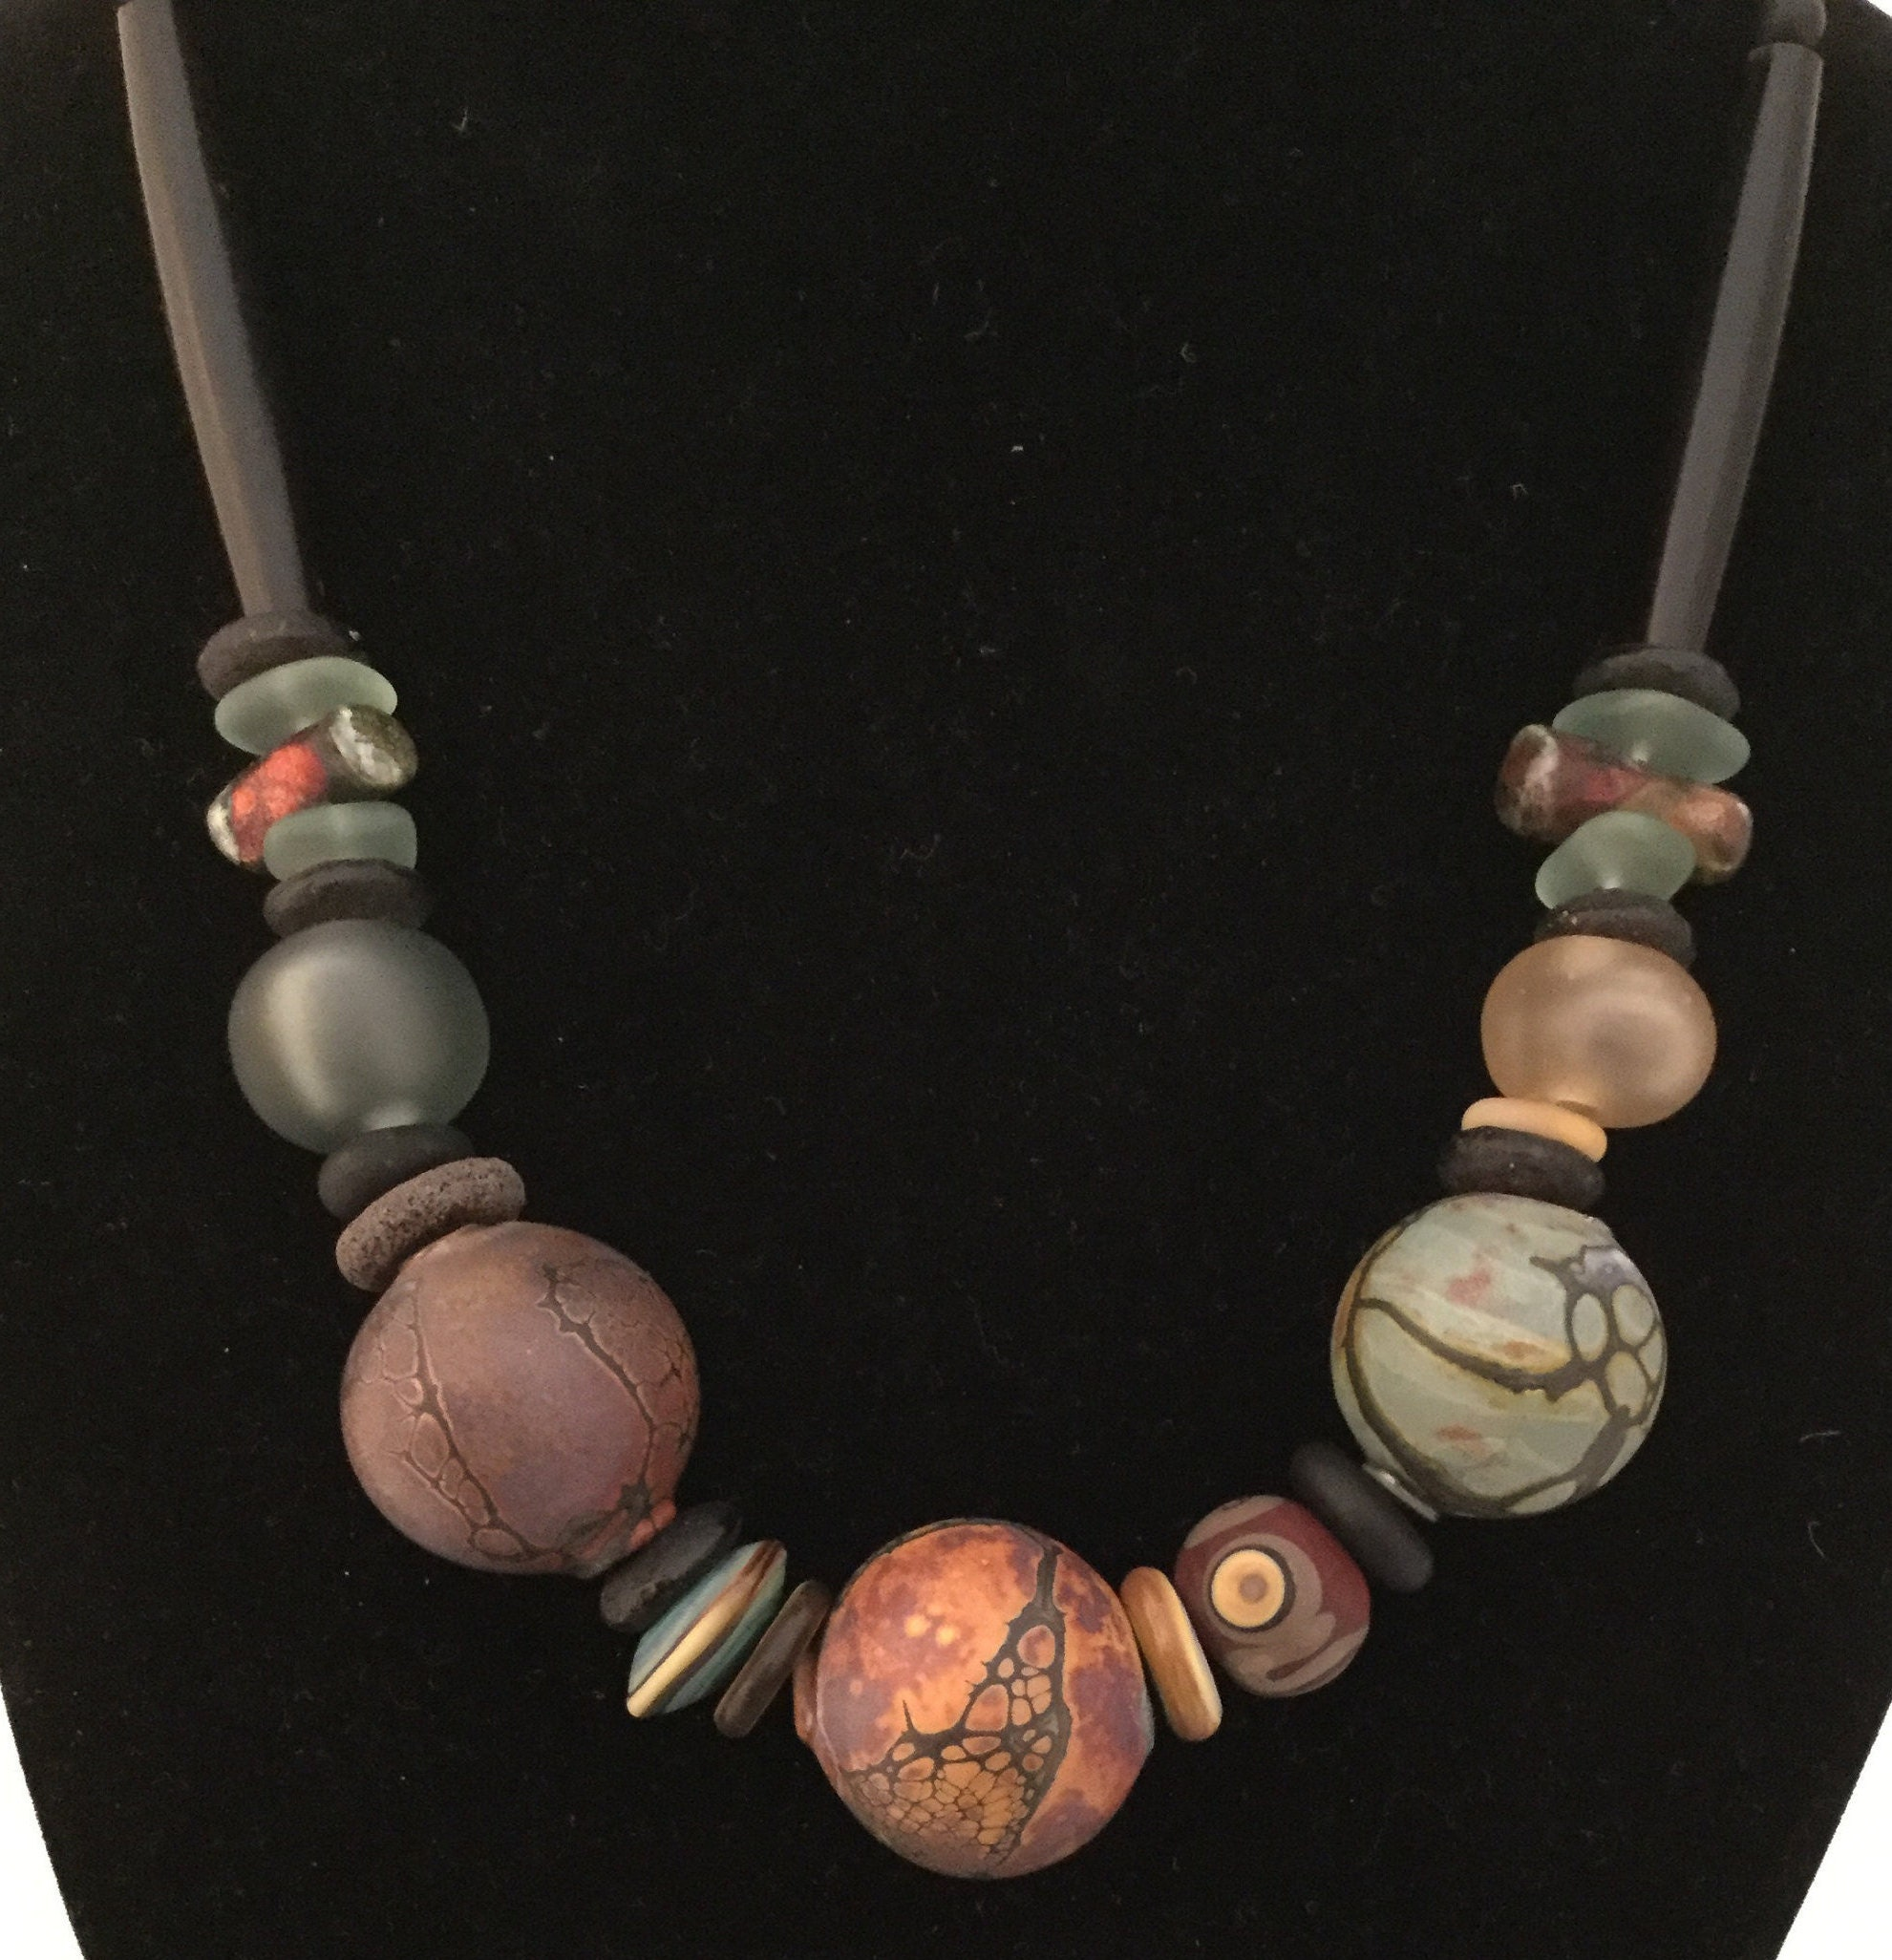 Stunning Artisan Ceramic Beads Accented By Raku Glass And Black Bone Pipe Shaped Beads